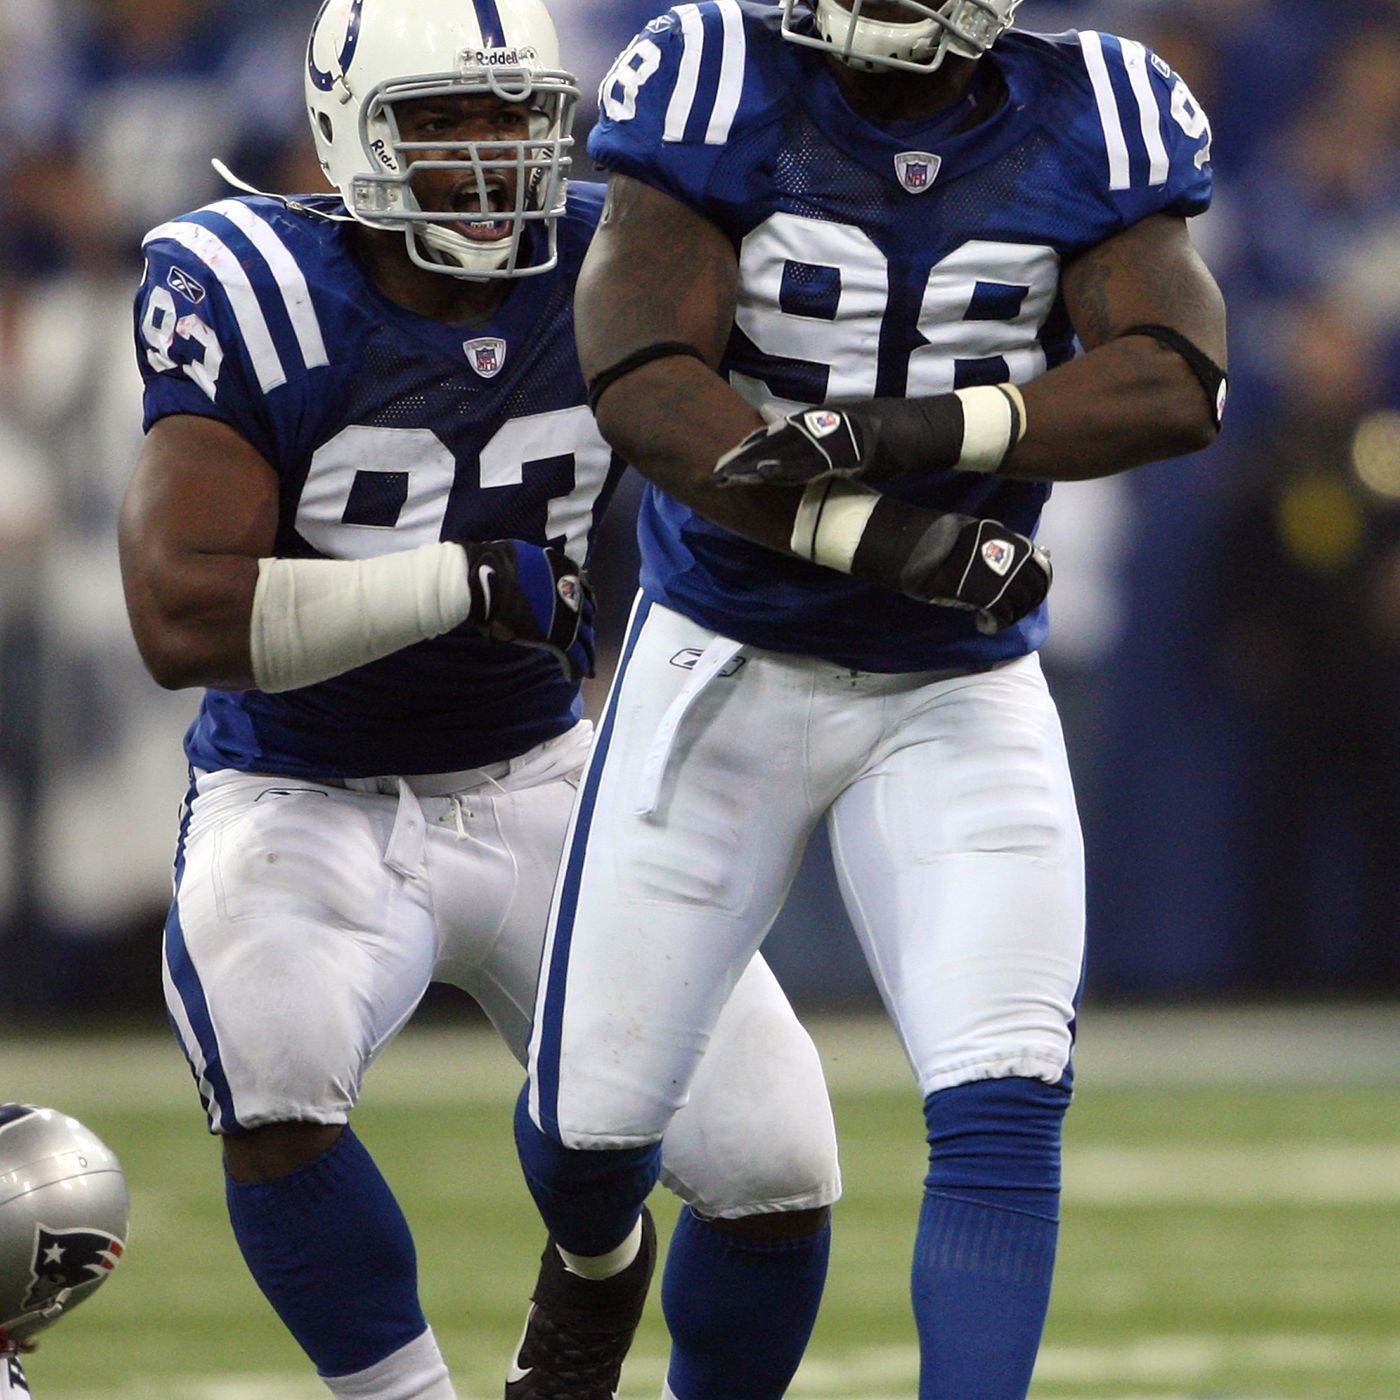 bc87c09c After Dwight Freeney, Who's Next to be Inducted into the Colts Ring ...